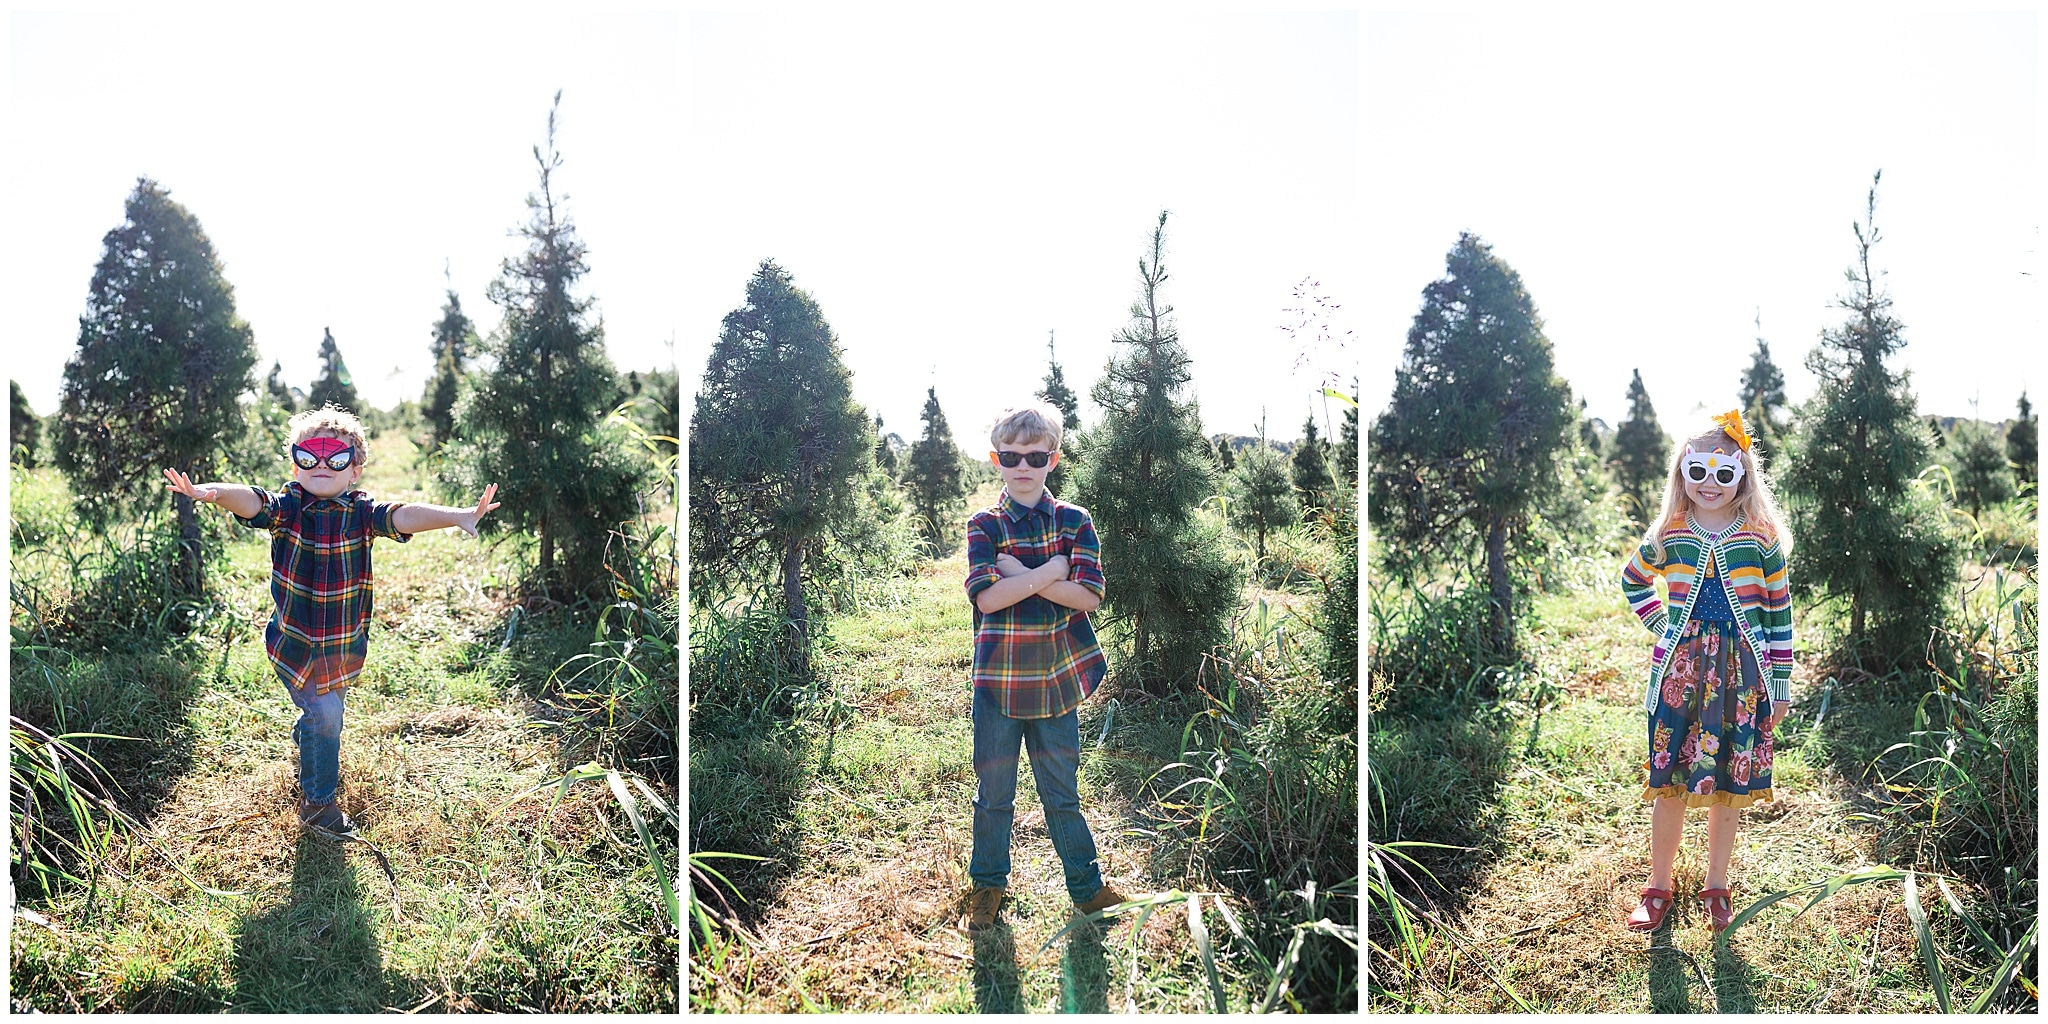 kids posing at Christmas tree farm for family portraits by Swish and Click Photography at Holiday Acres Farm in Manvel Texas